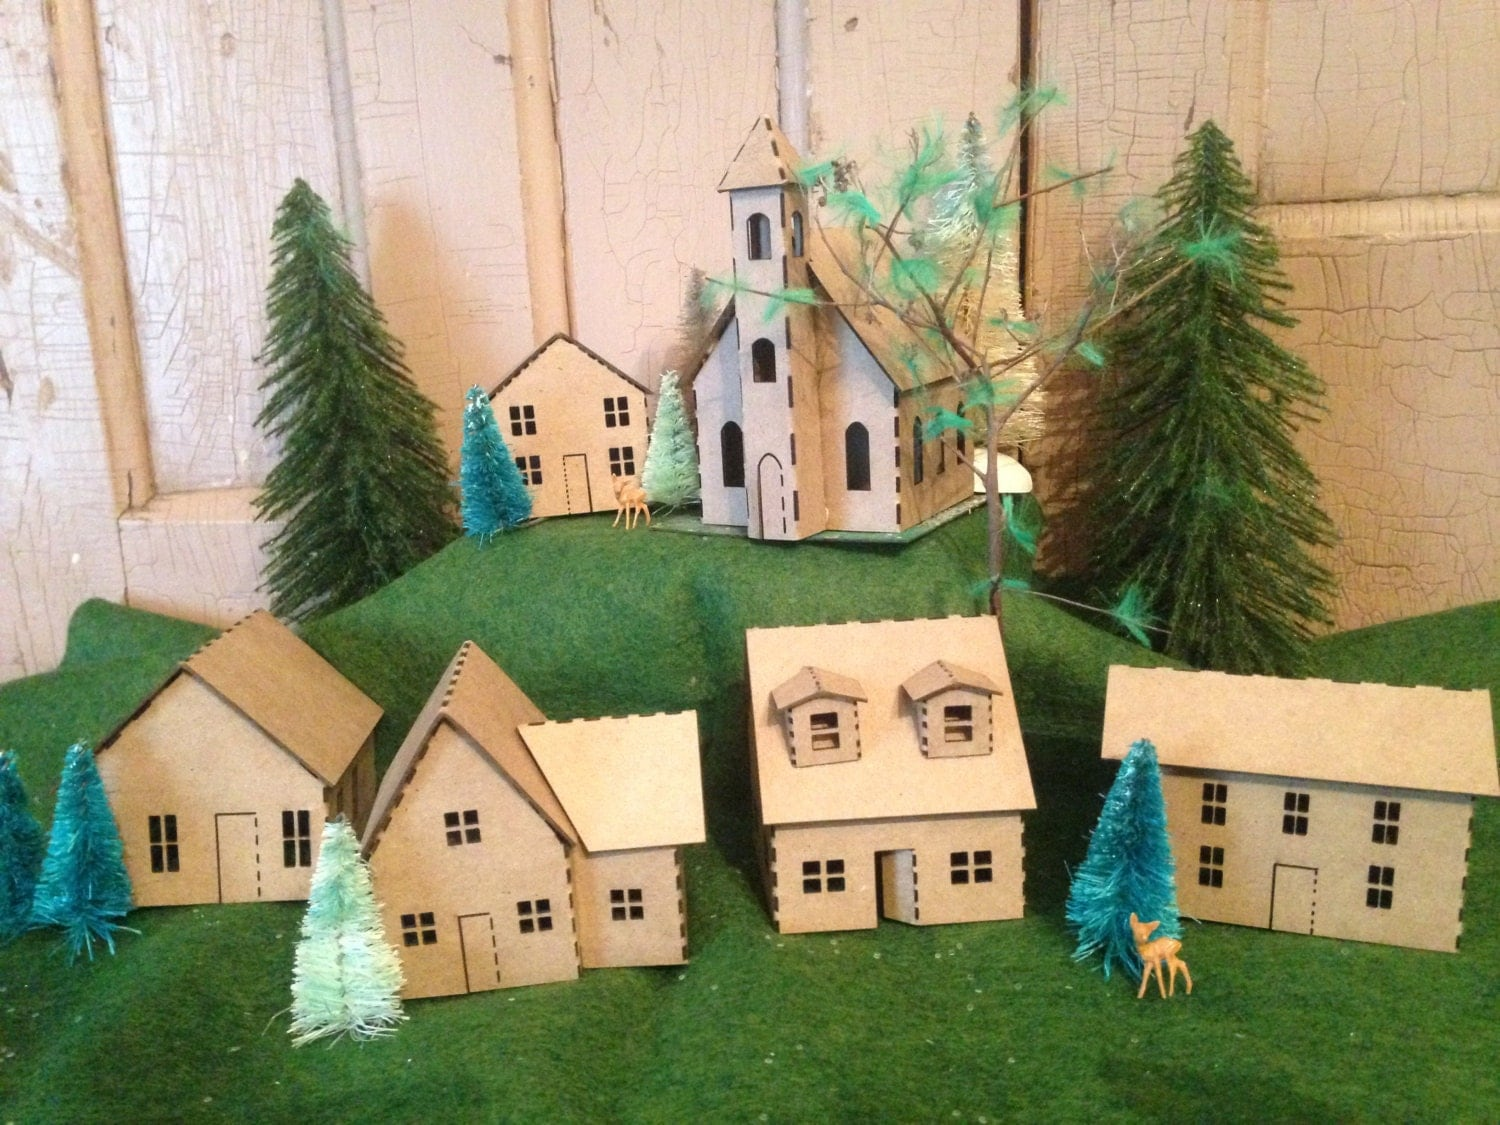 Putz house kit DIY 6 miniature houses by AgedWithThyme on Etsy